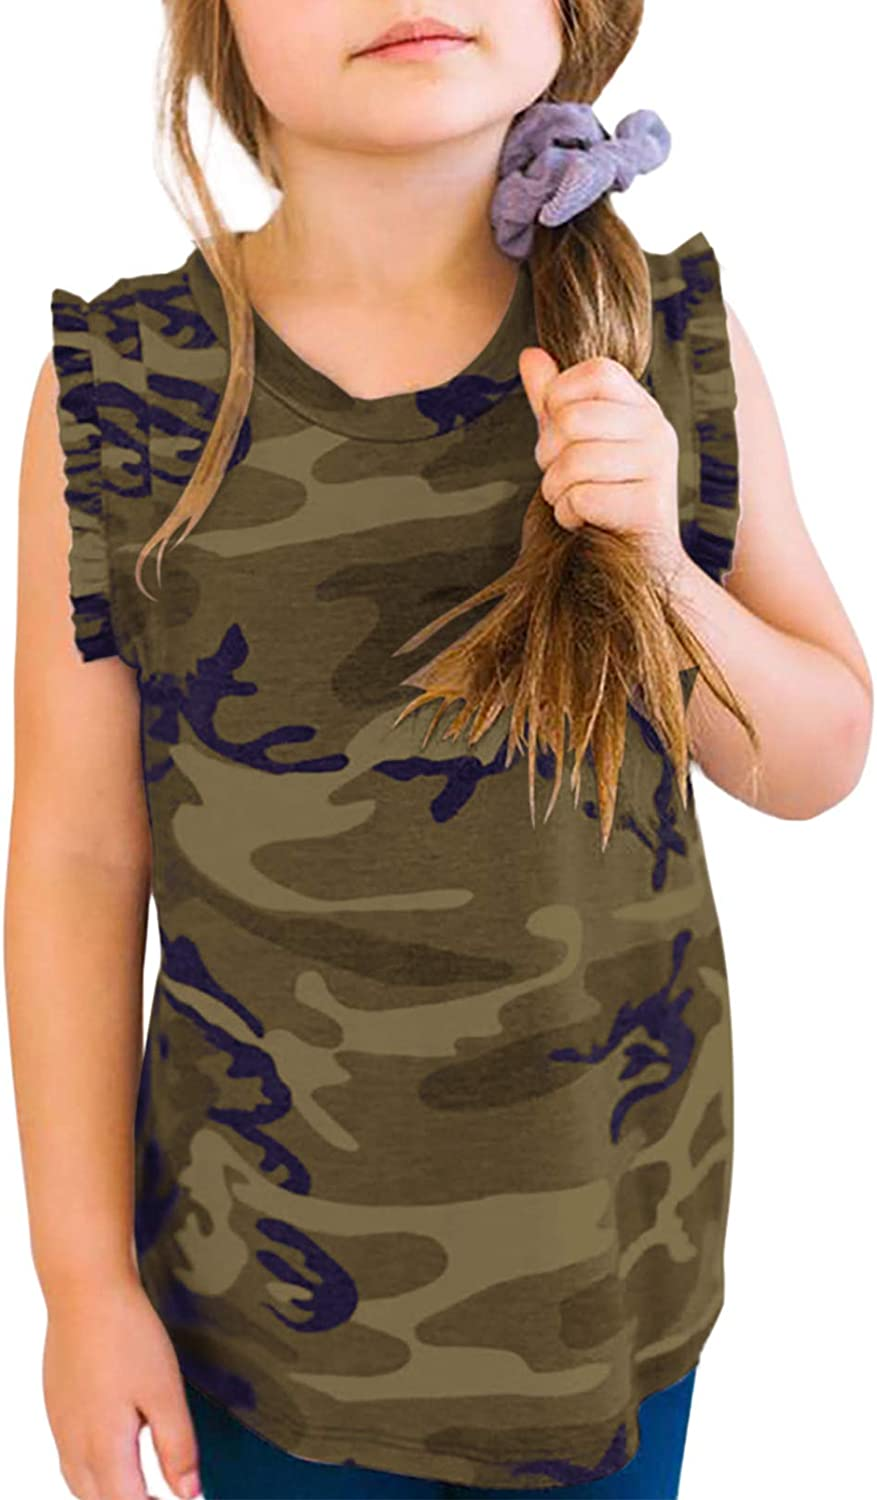 5 ☆ popular Sidefeel Girls Spring new work one after another Cute Camouflage Print Ballet D Sleeveless T-Shirt